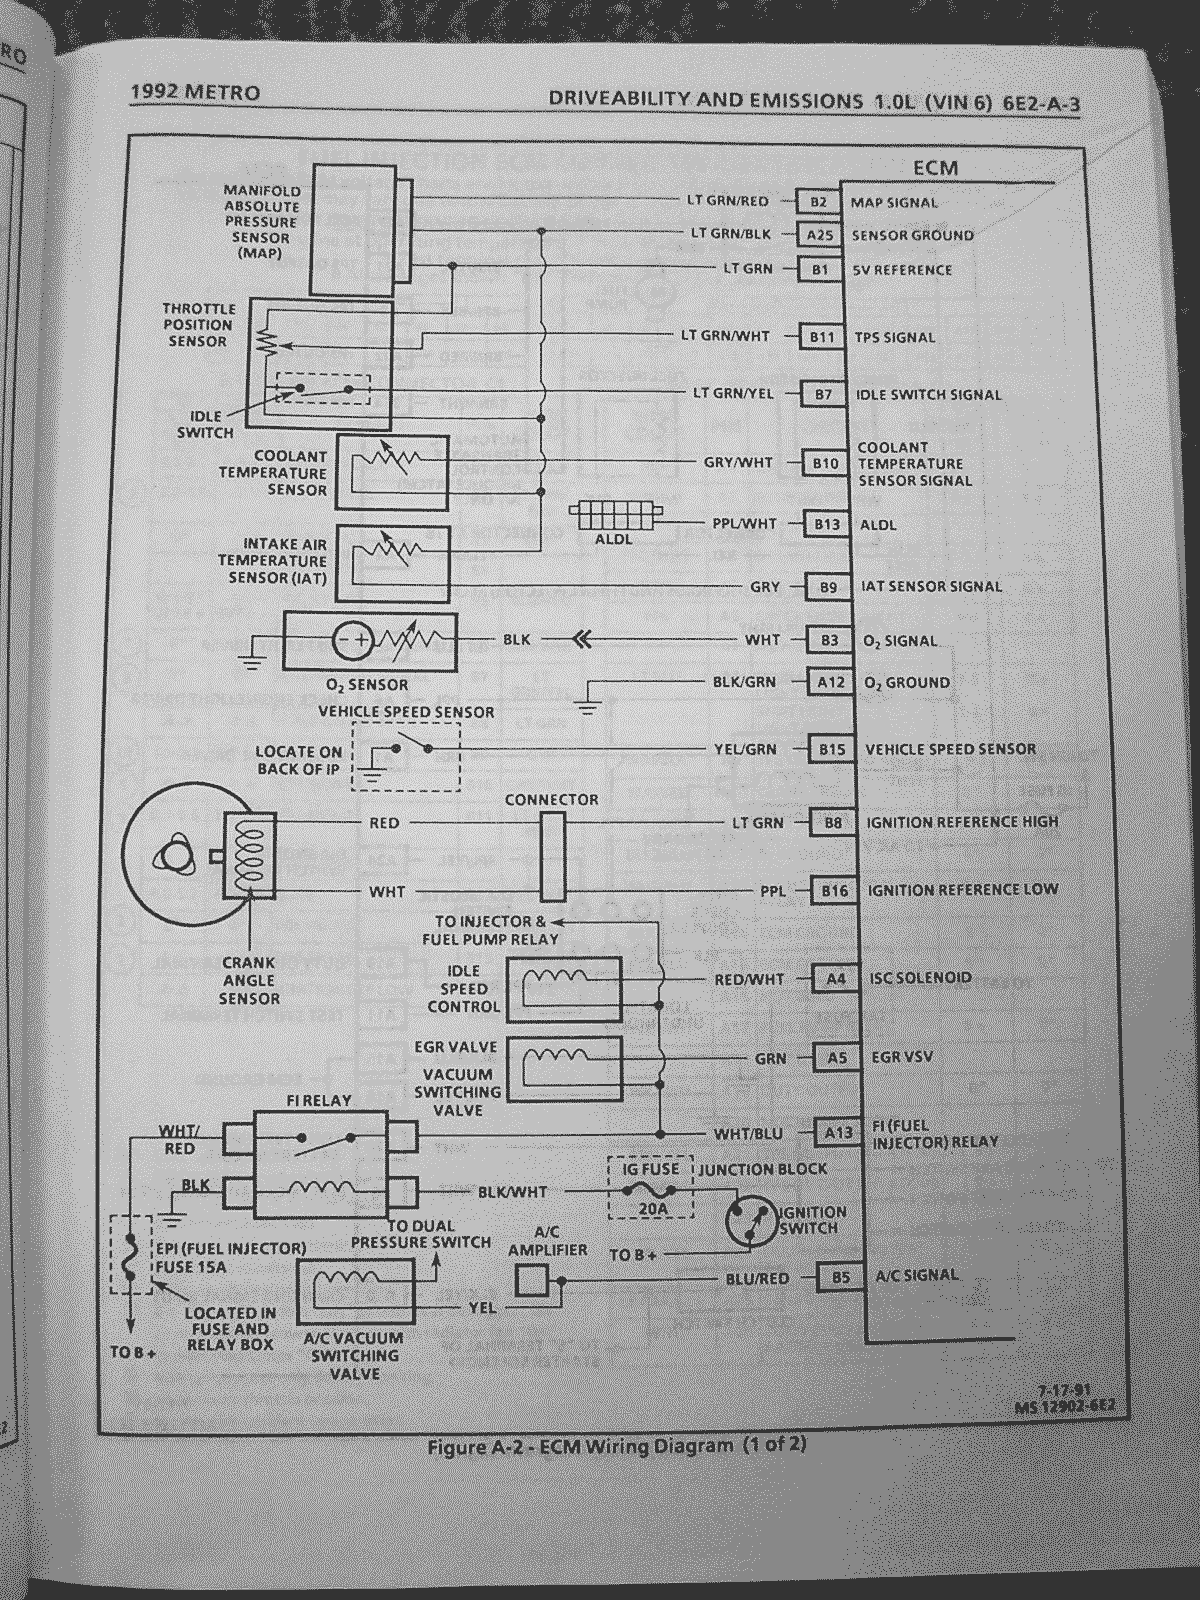 6e2 a 3 geo metro and suzuki swift wiring diagrams metroxfi com fuse boxes 1996 geo metro at honlapkeszites.co